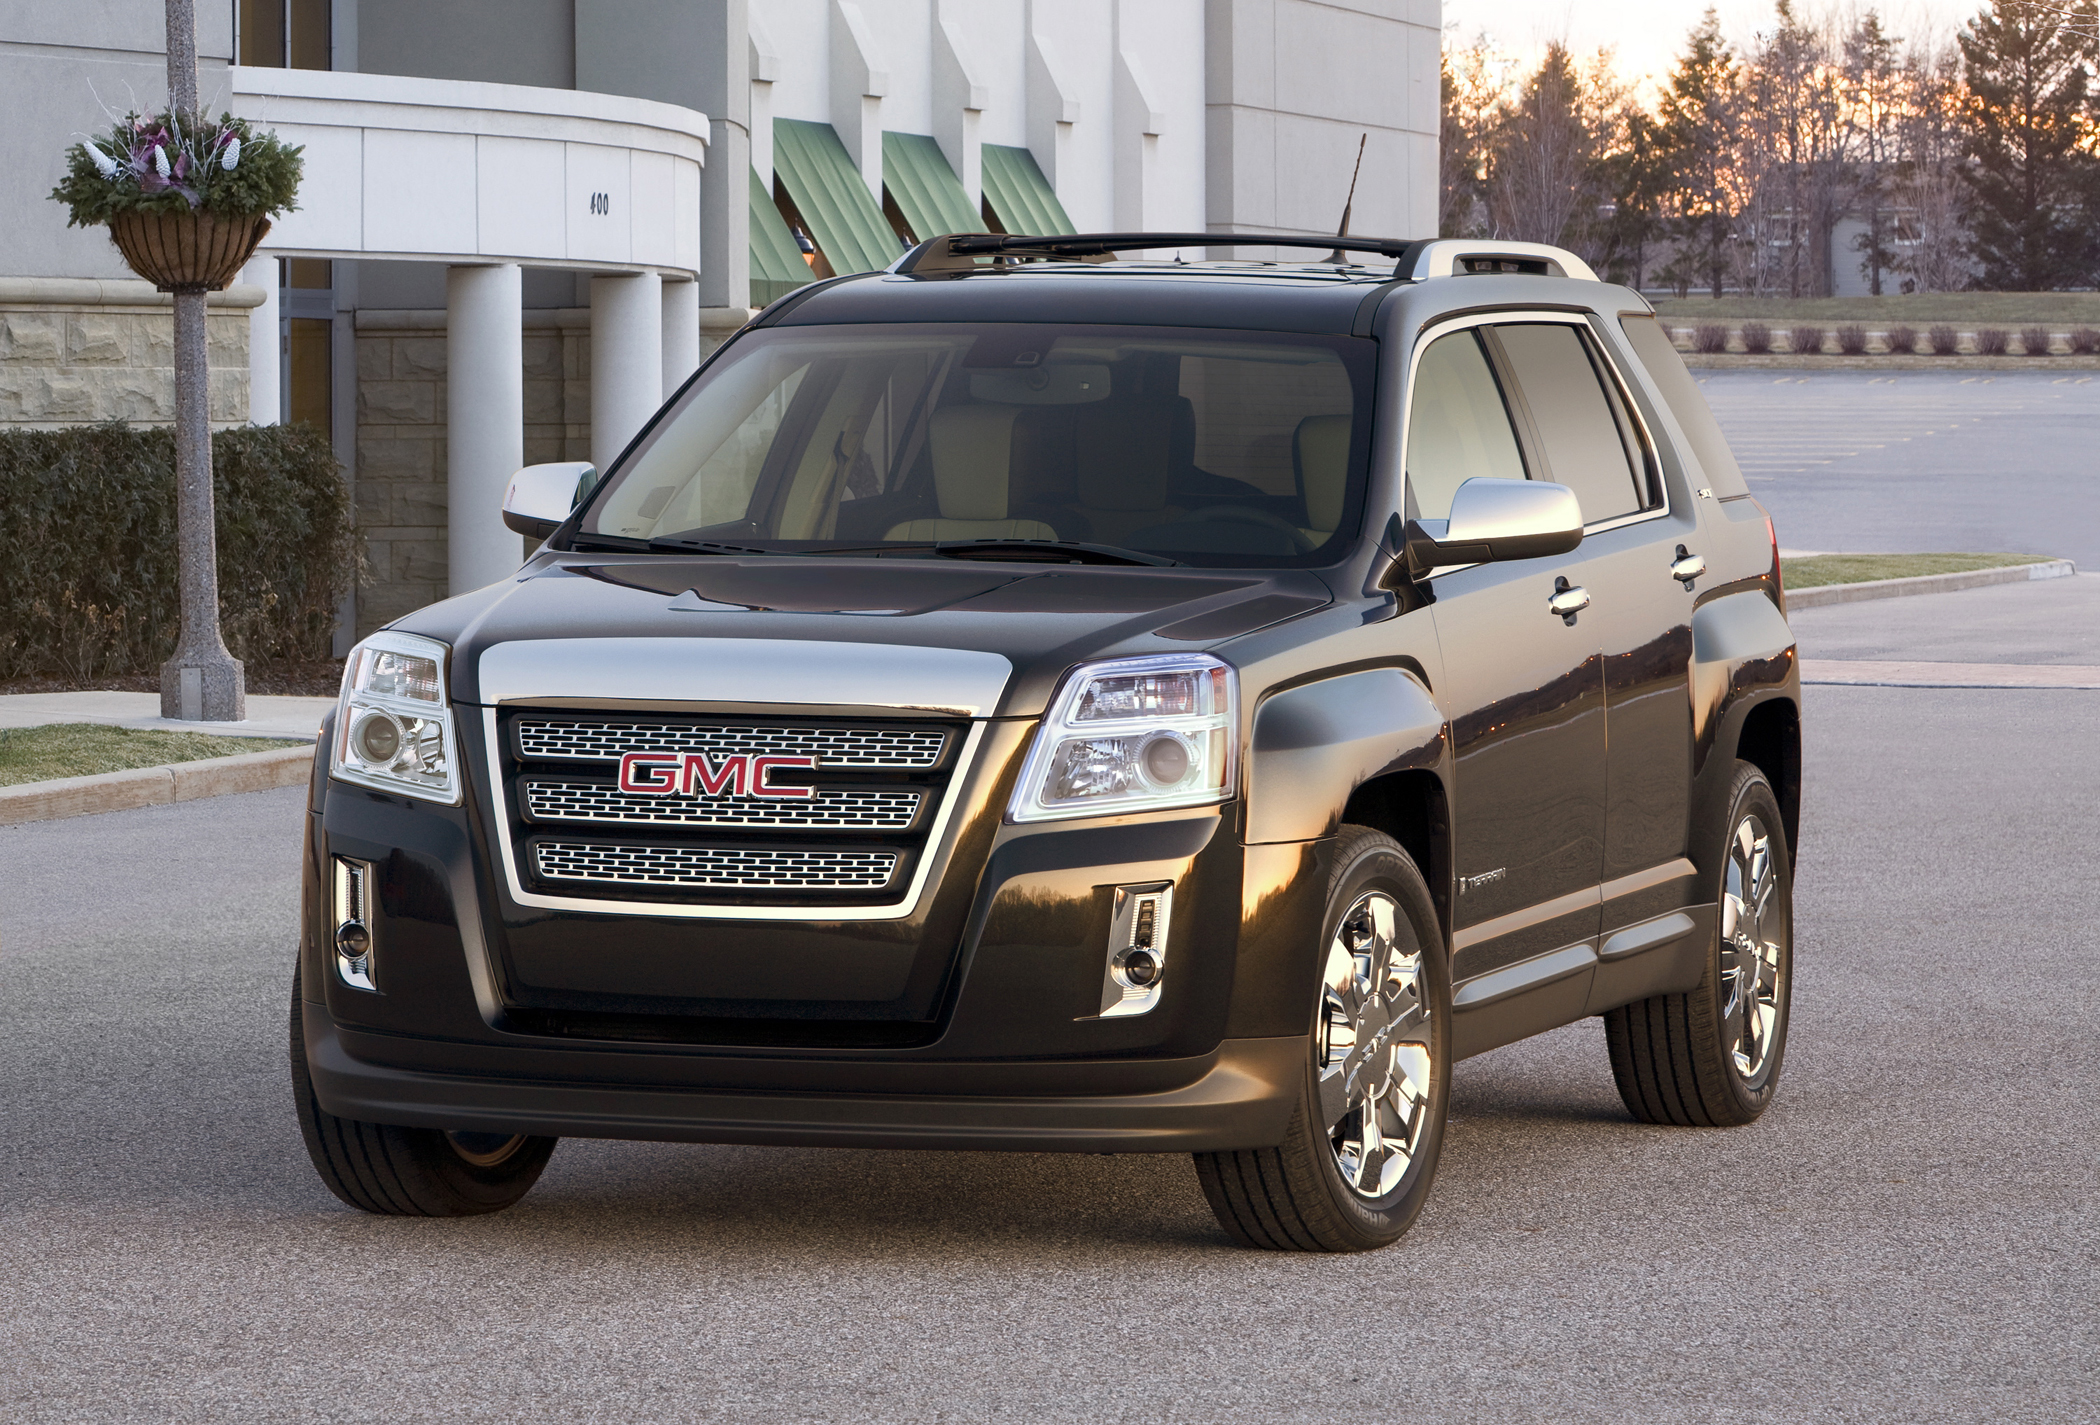 kent de lease gmc co motor terrain vehicle vehicledetails sale awd terrains sales slt county photo at dover for in new